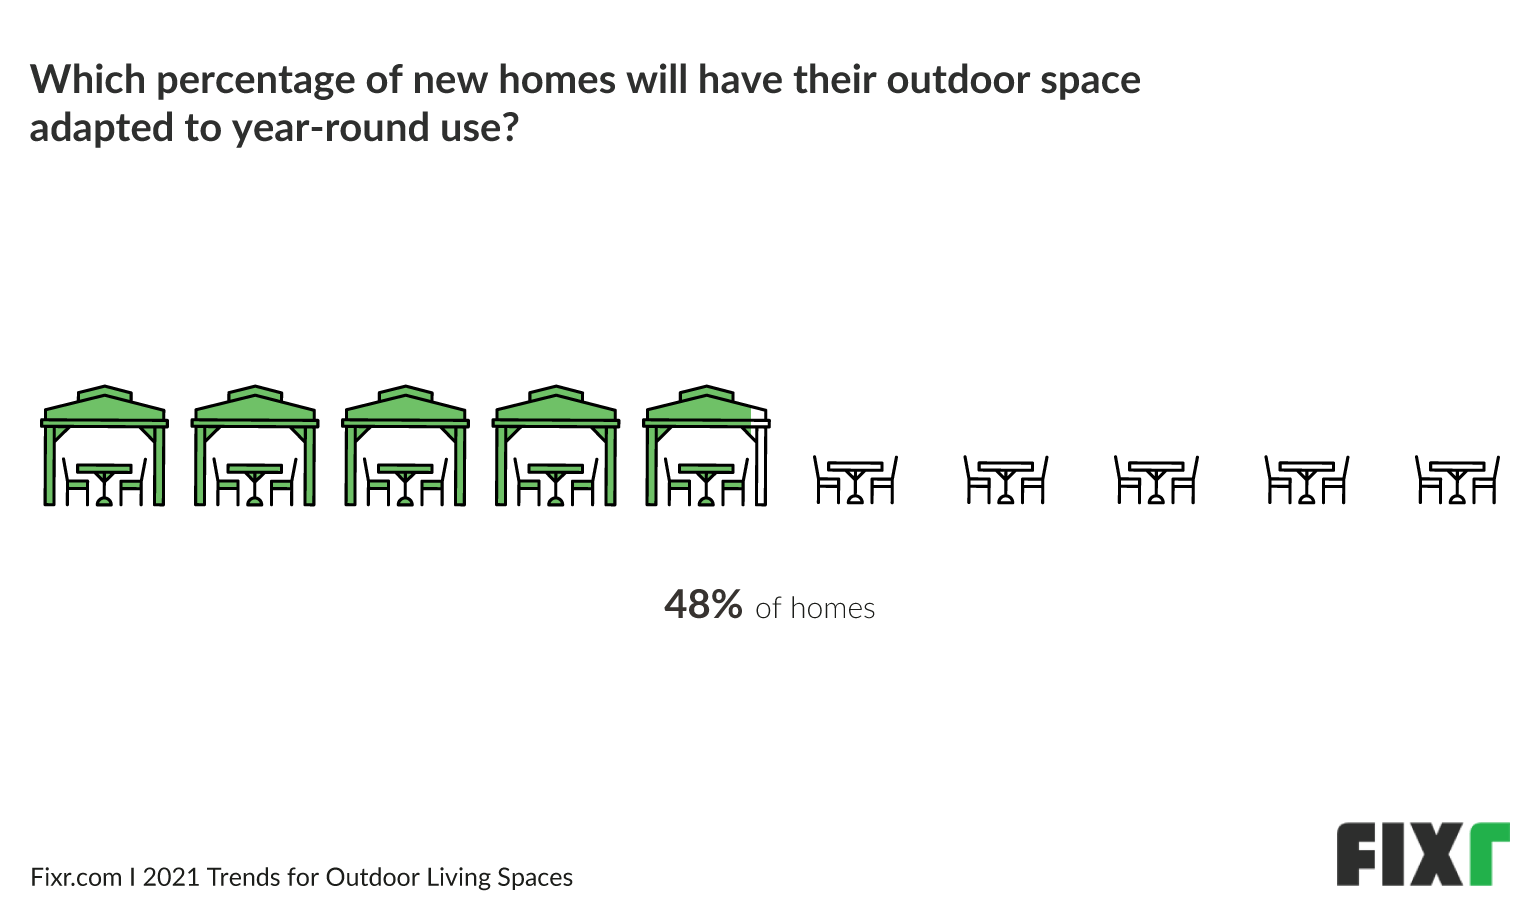 Around 50% of outdoor living spaces in 2021 will be adapted for year-round use